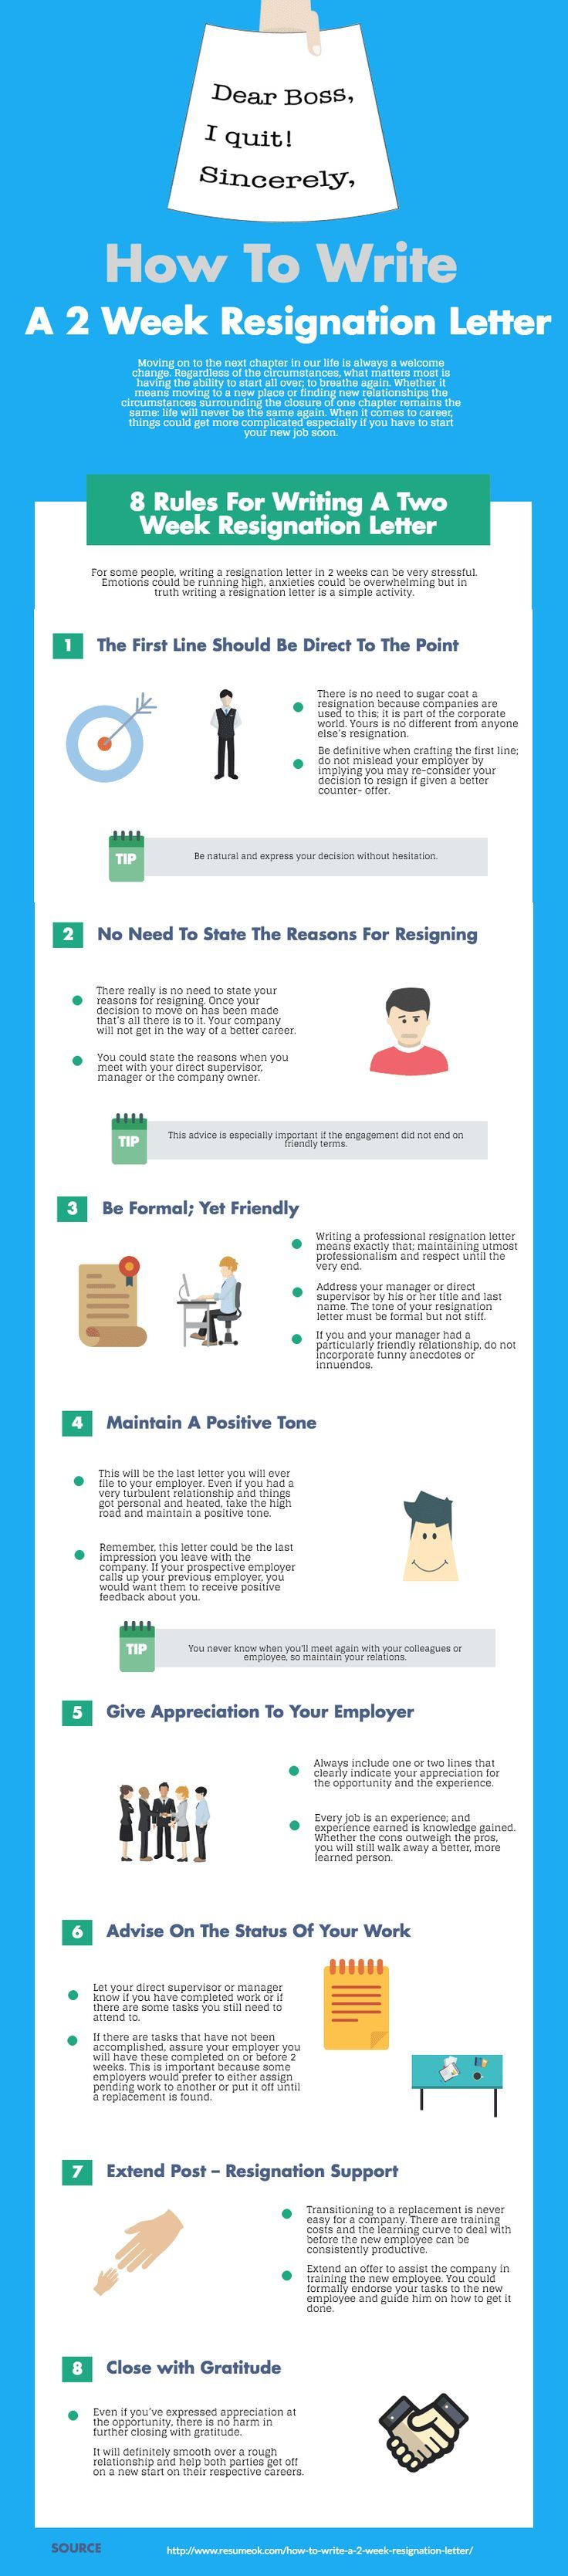 best resignation sample ideas pinterest job how write week letter infographic